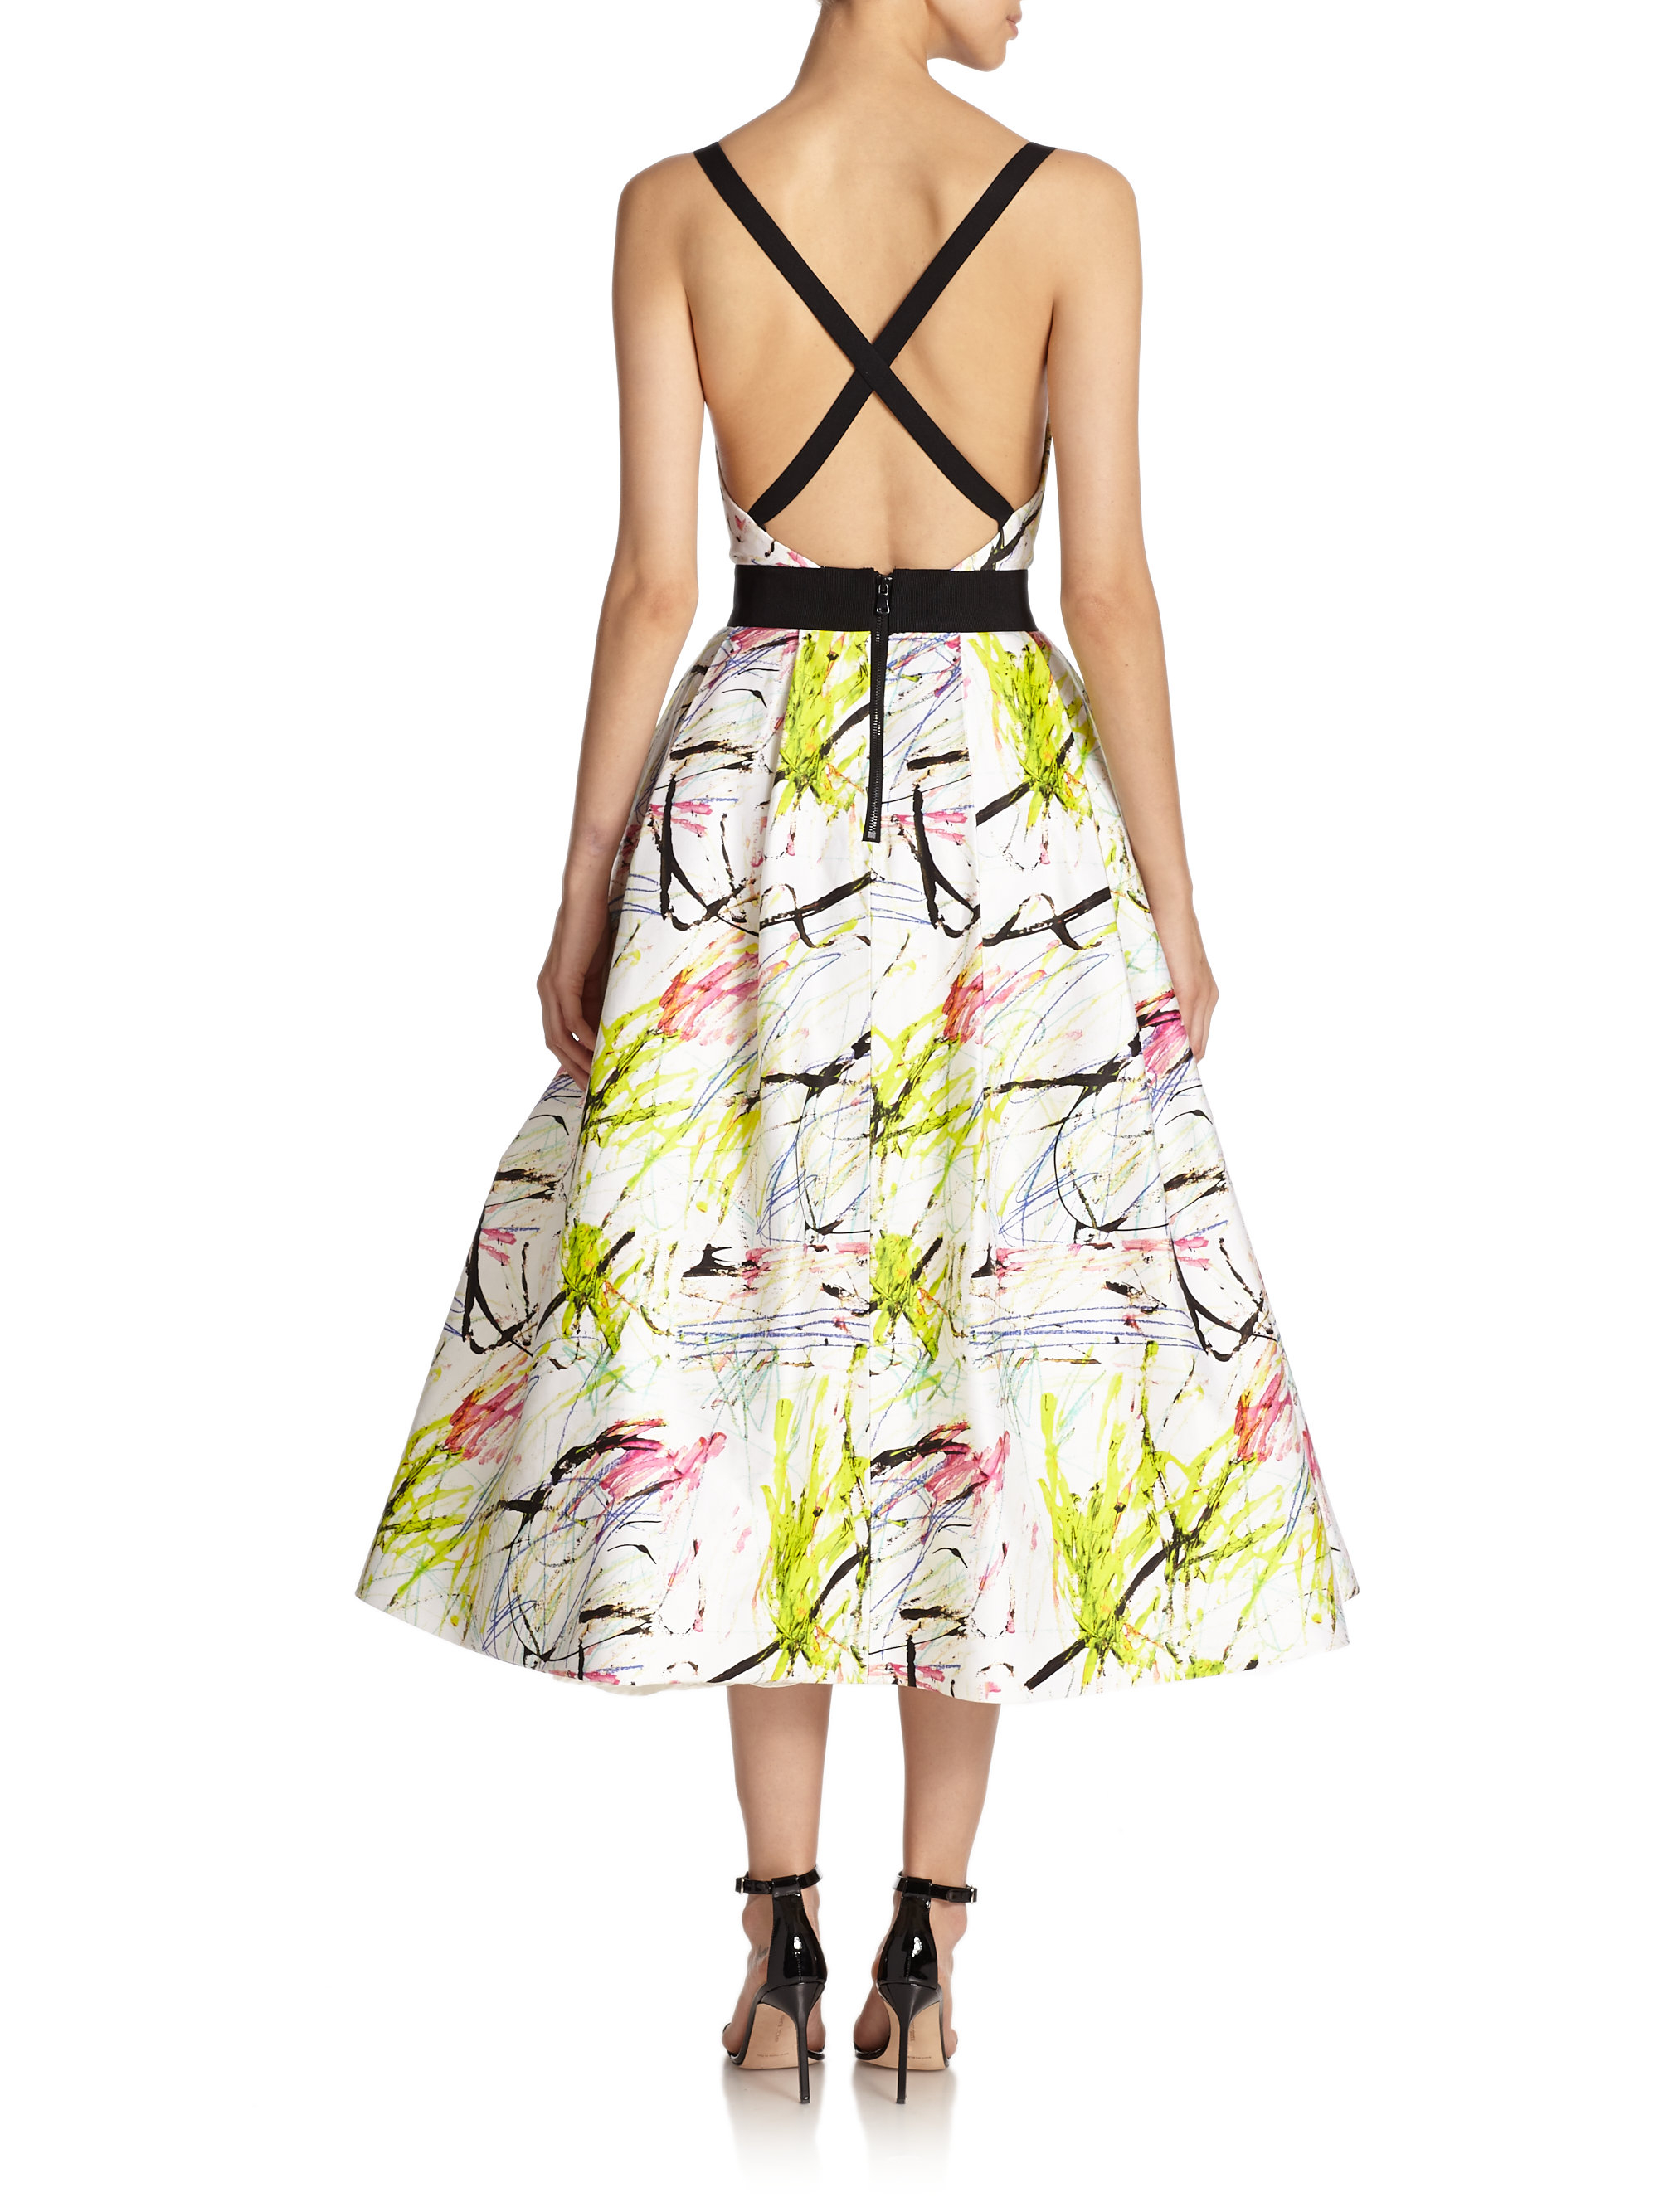 Lyst - Milly Serena Scribble-Print Cocktail Dress